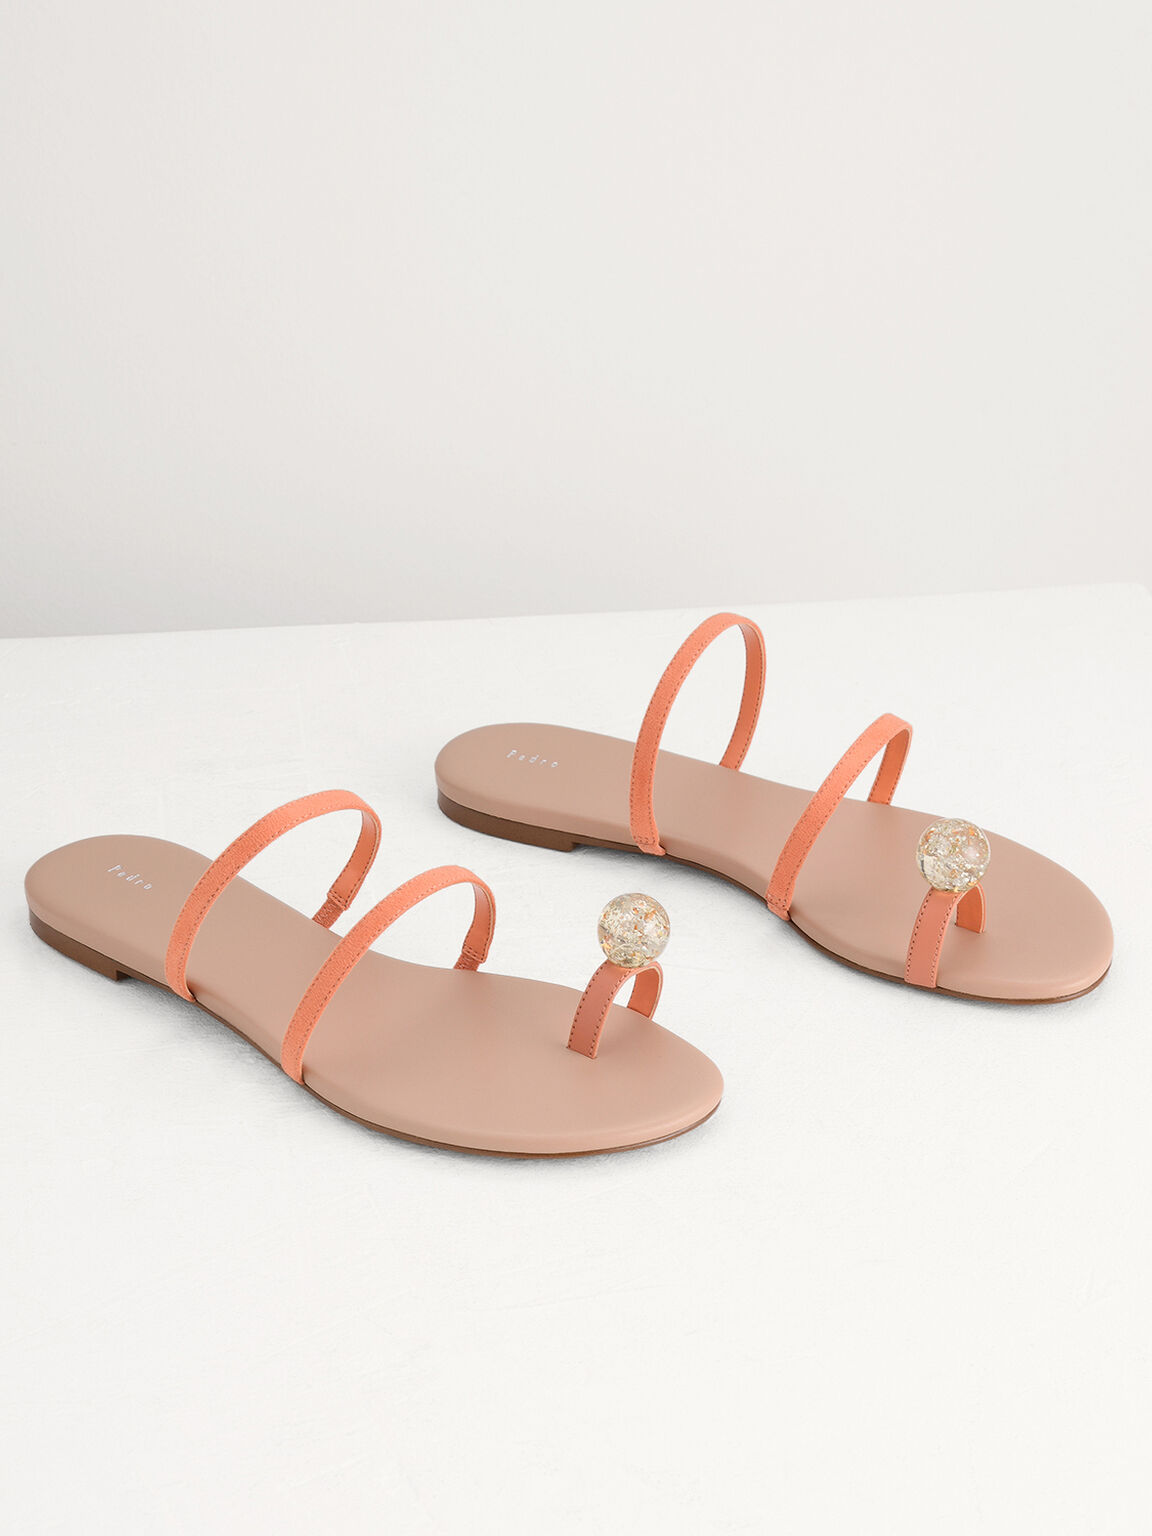 Embellished Toe-Ring Strappy Sandals, Peach, hi-res